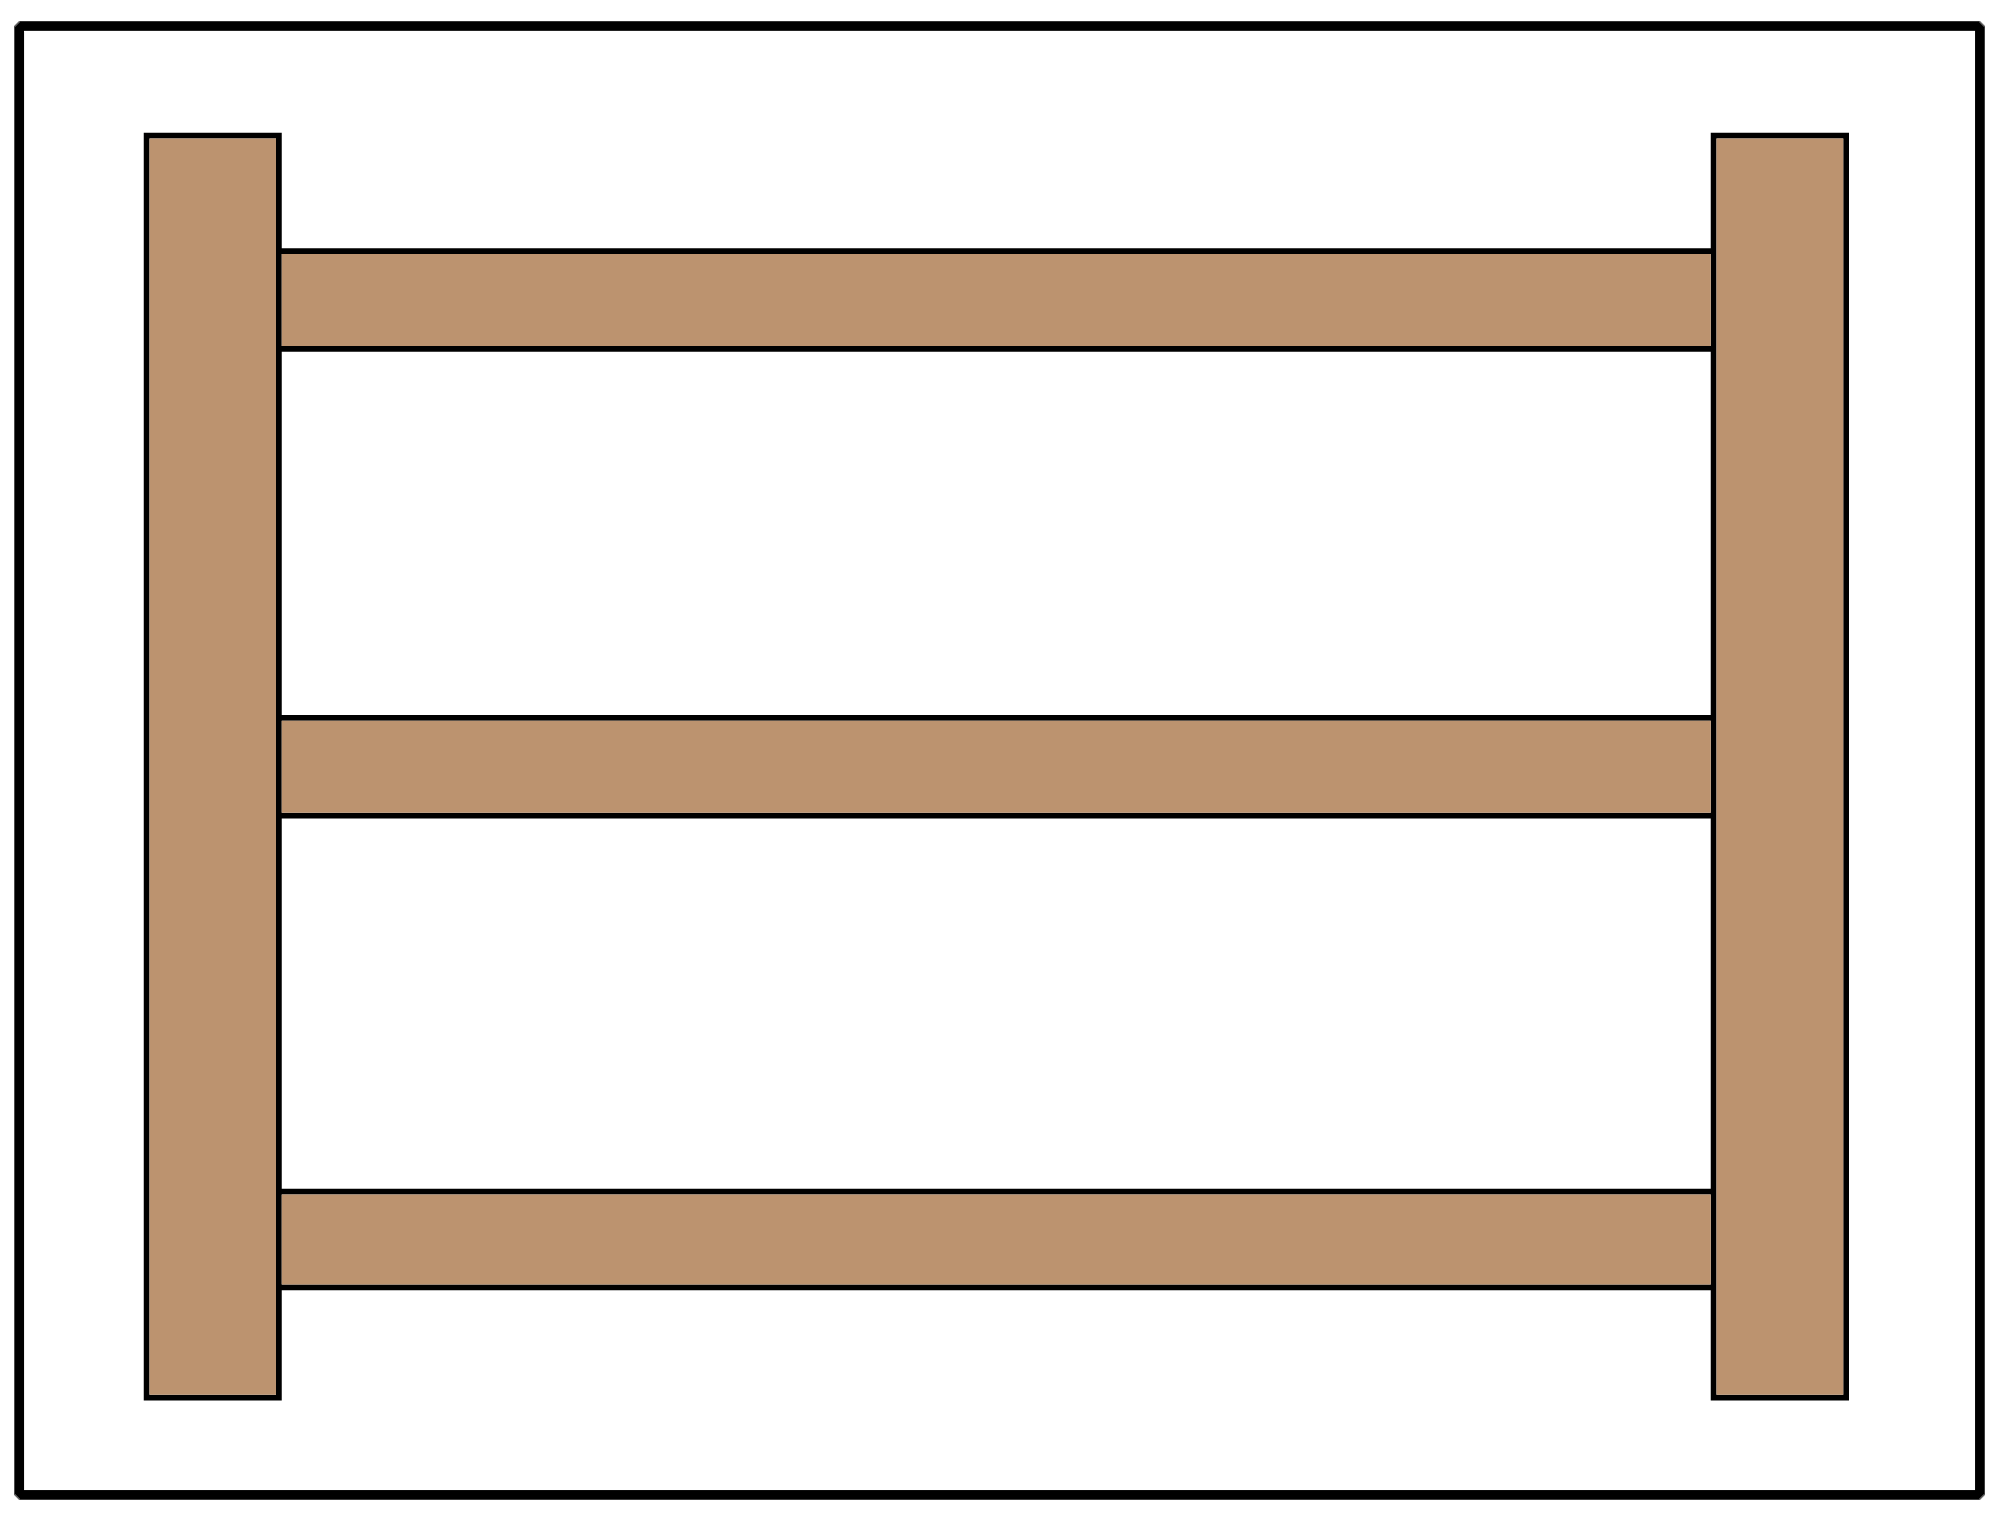 Split rail or estate fence using 3 rails